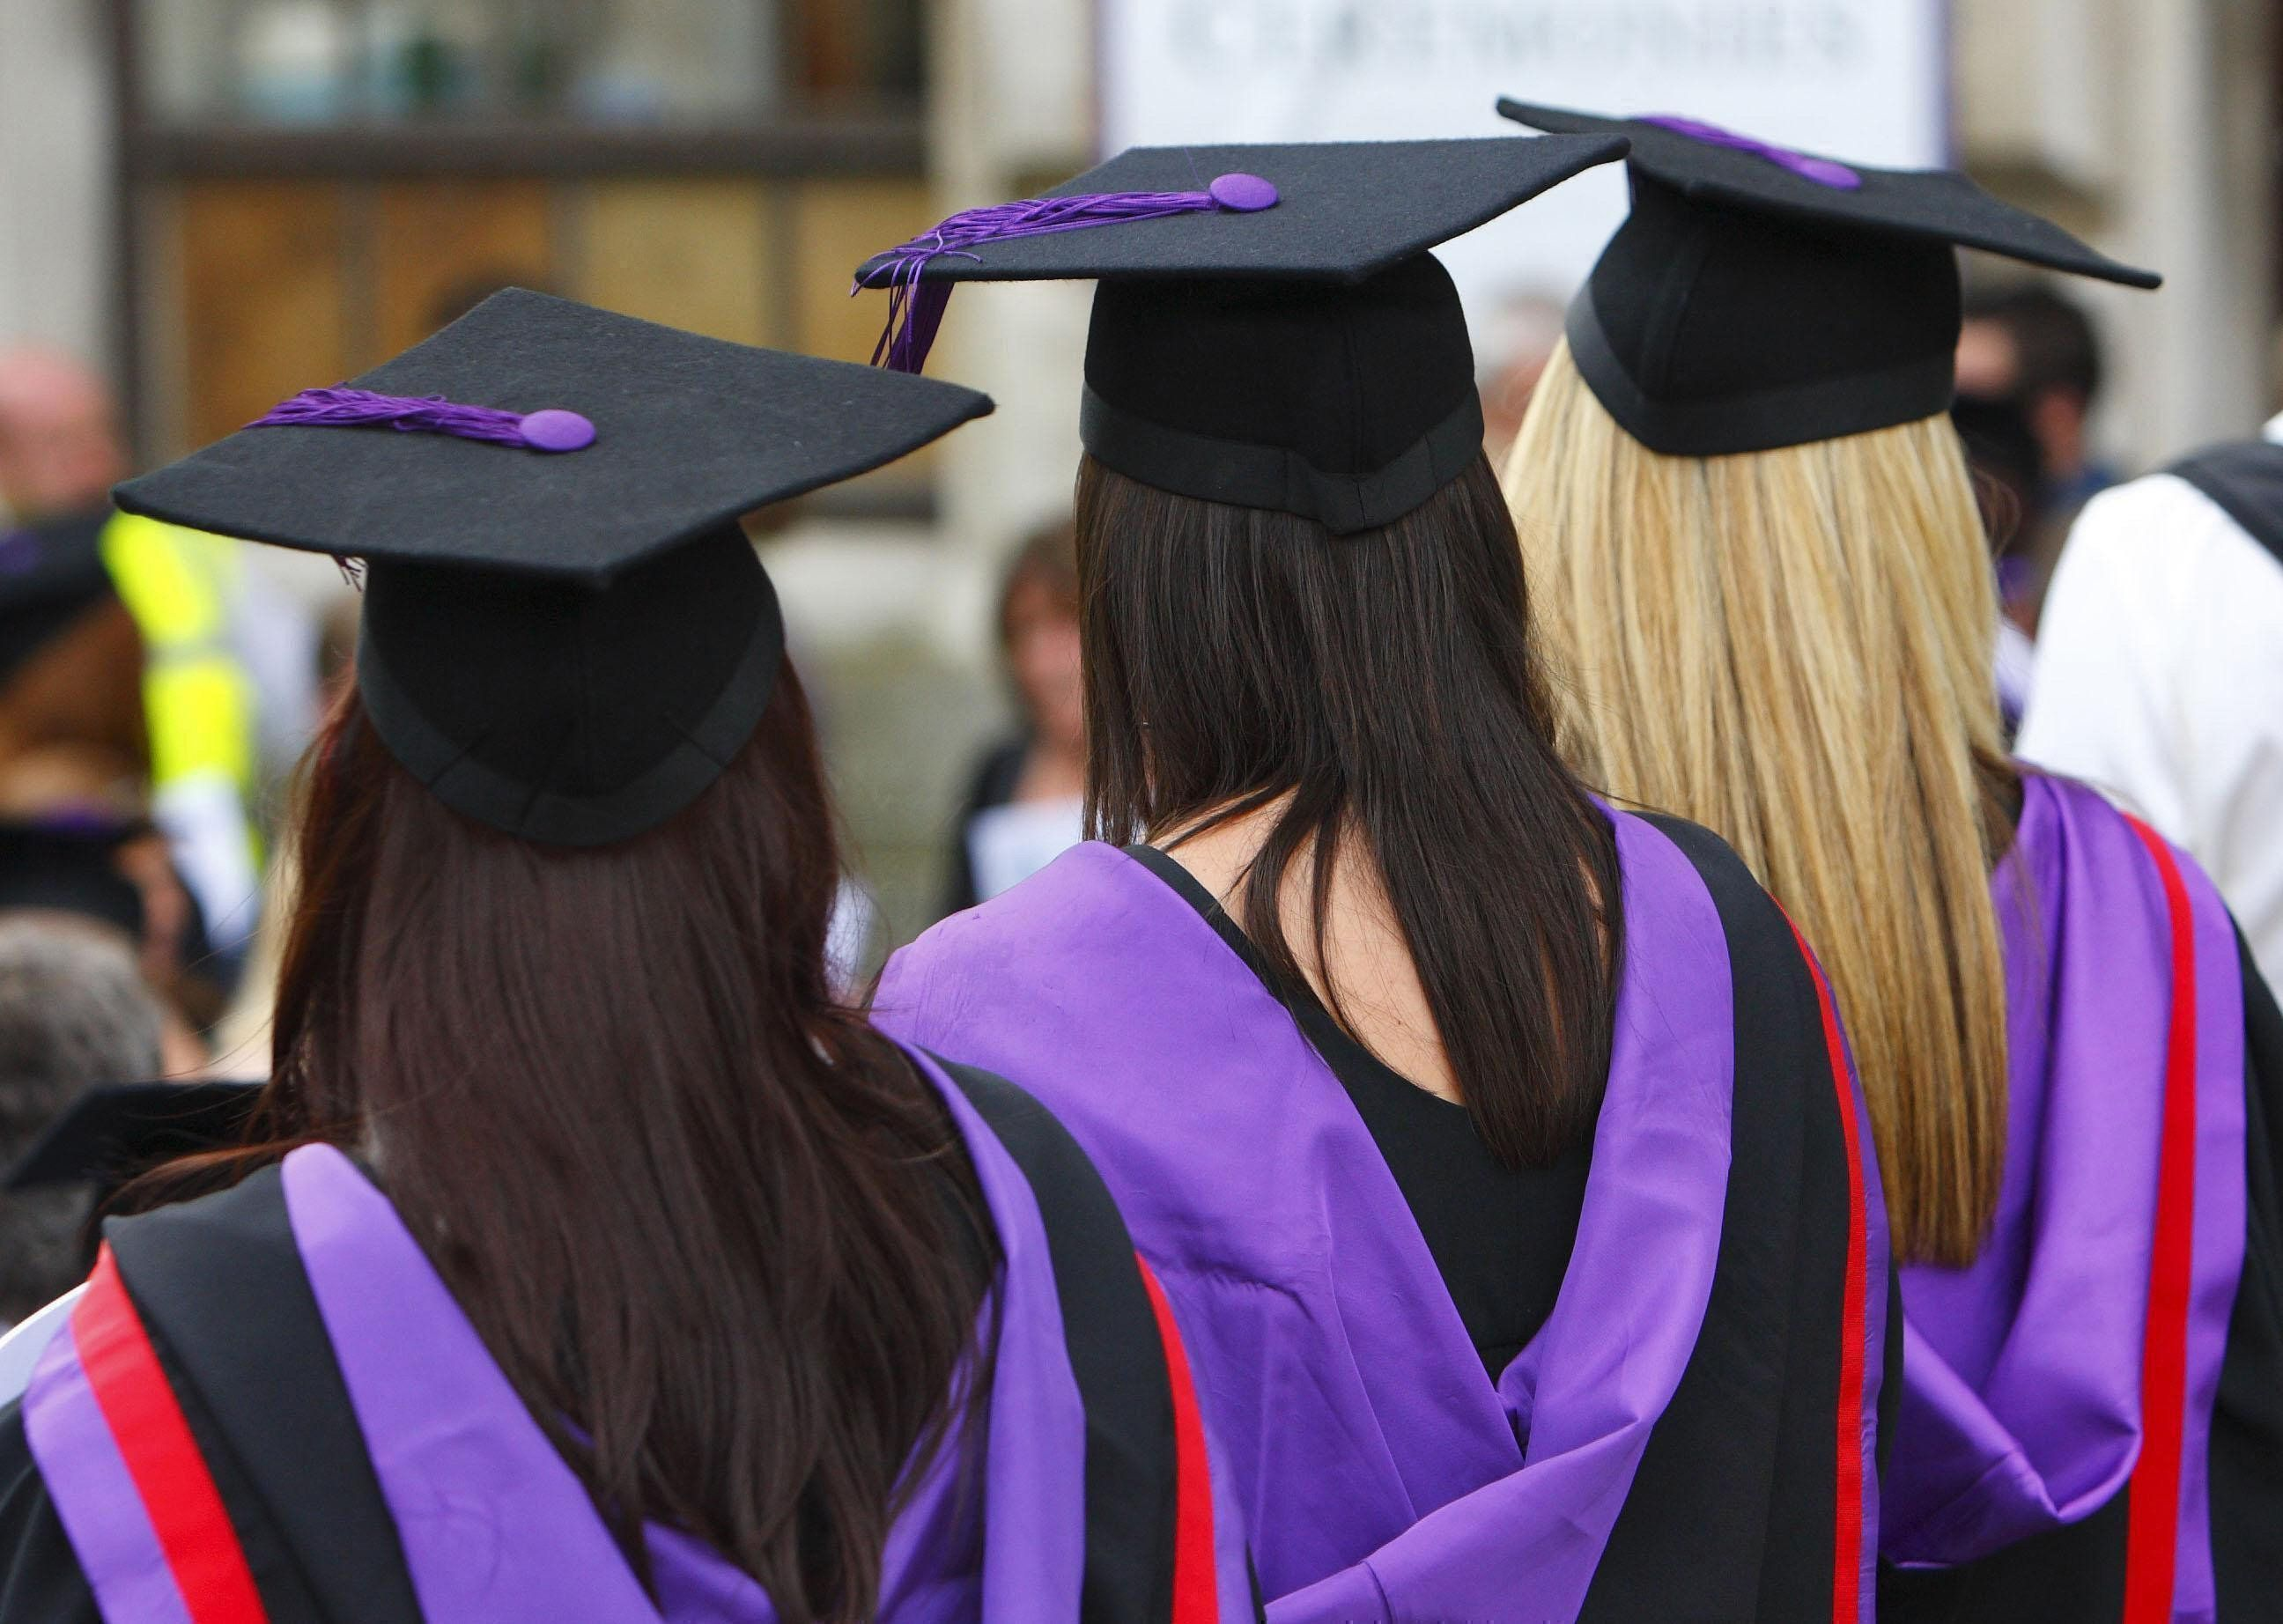 Universities Could Face Fines Over 'Failures To Protect Free